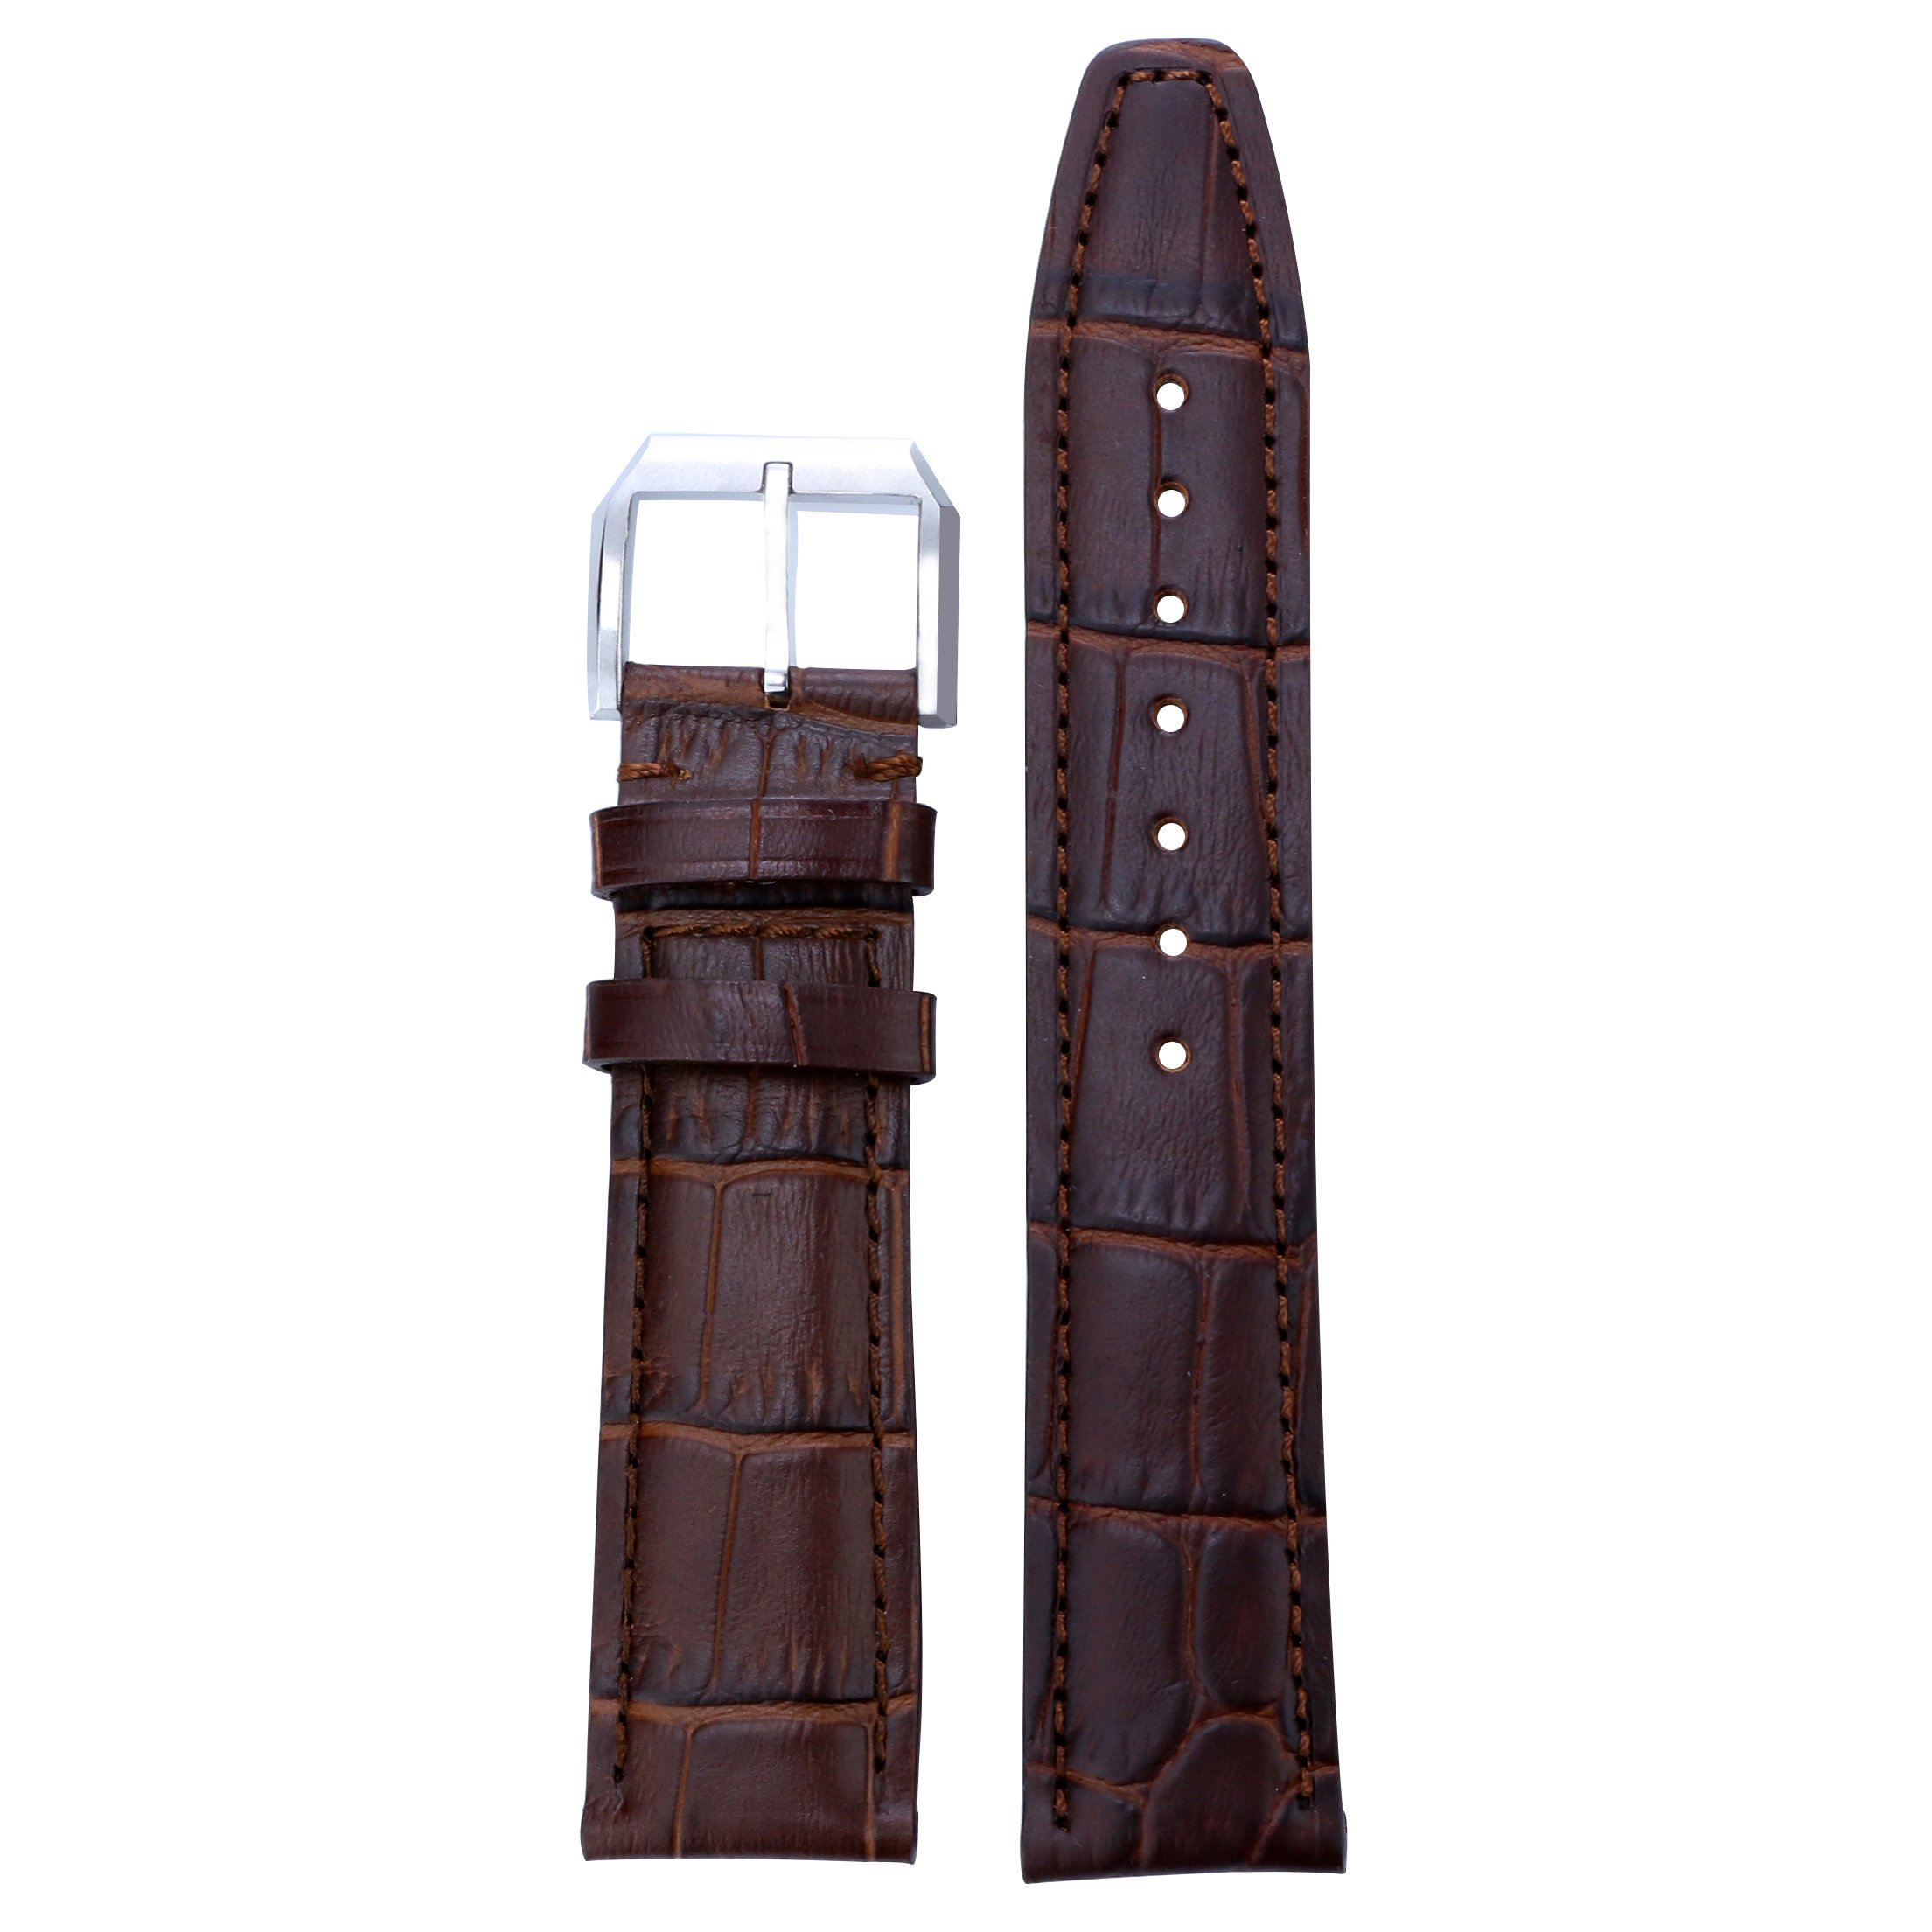 20mm Deluxe Brown Leather Watch Bands Grosgrain Matt Stitched Strap Pin Buckle for High-end Brands by autulet